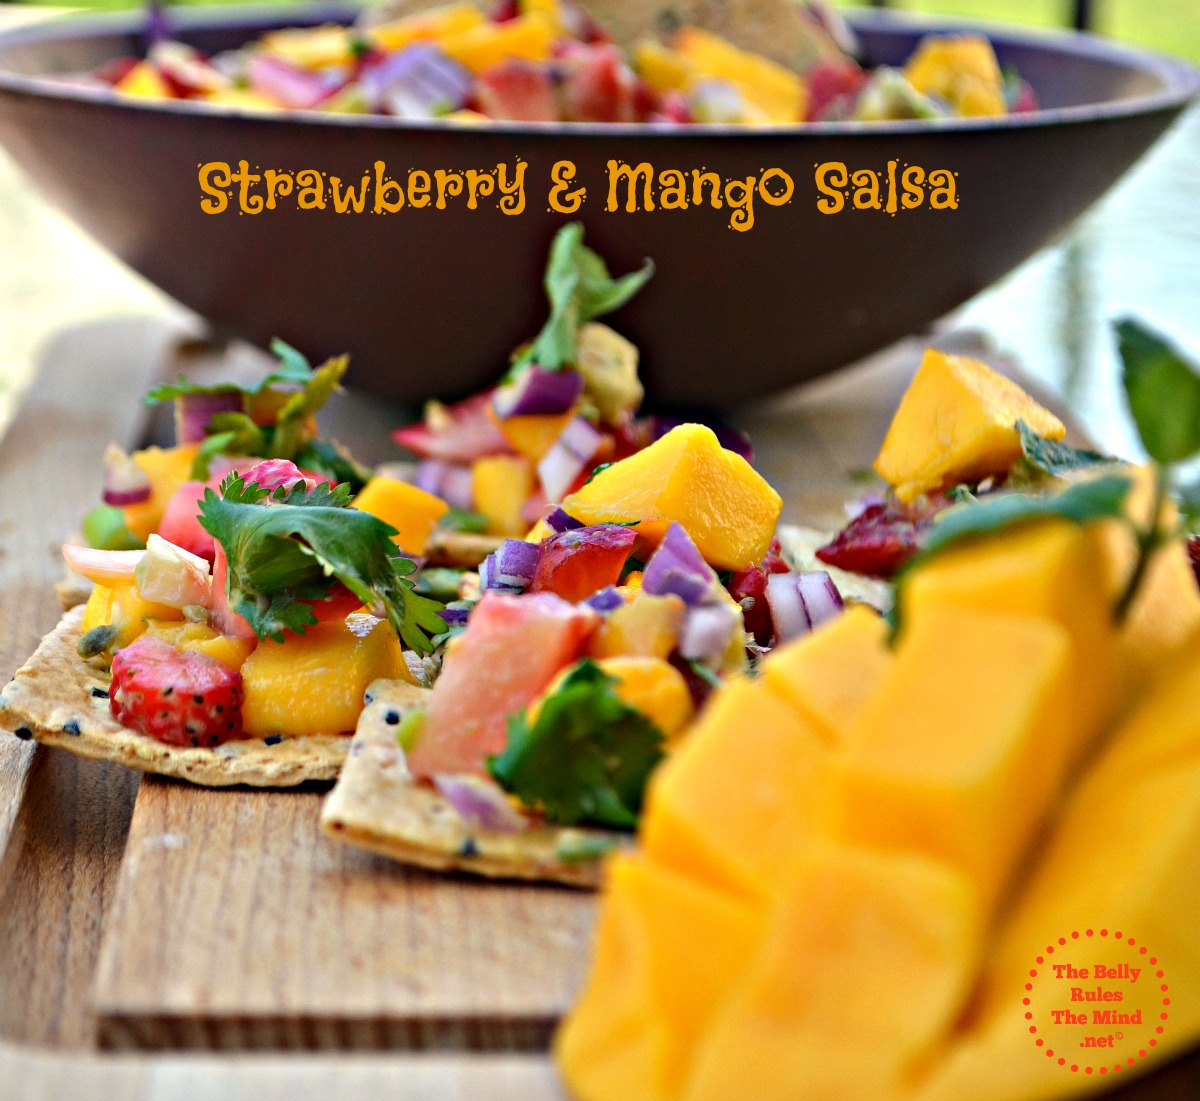 strawberry & mango salsa